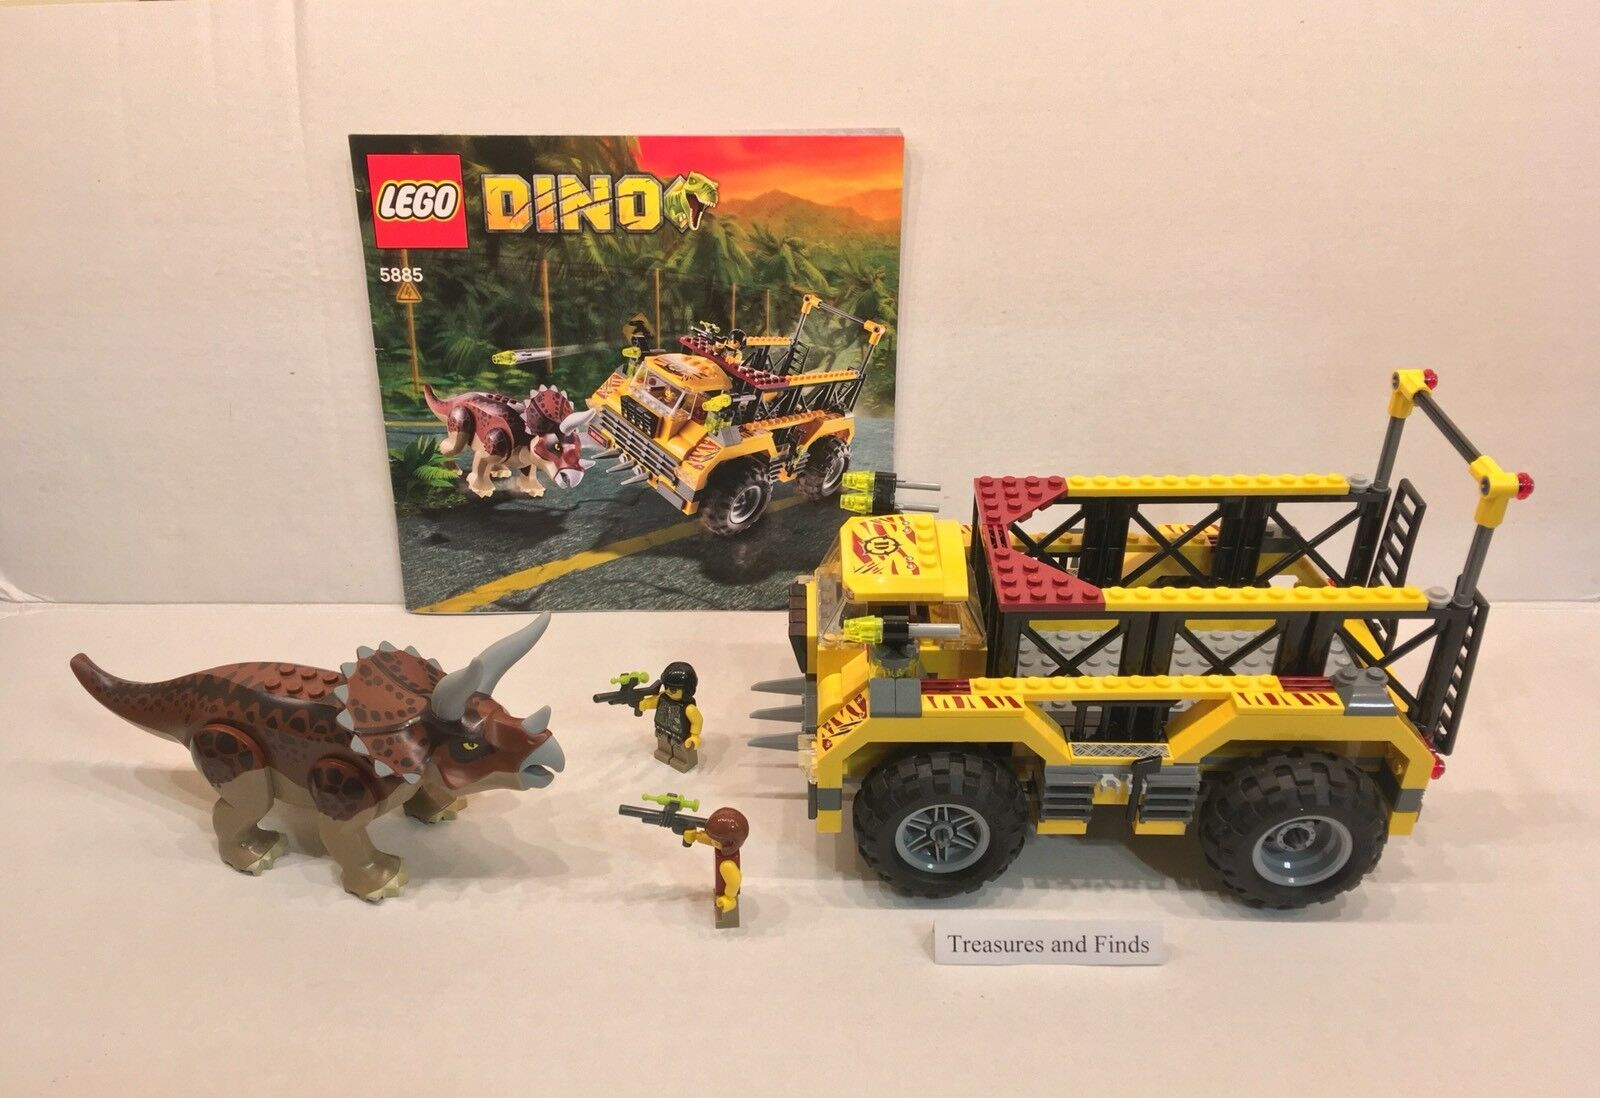 Lego Dino Dinosaure 5885 Triceratops Trapper complet W Instructions, sans boîte